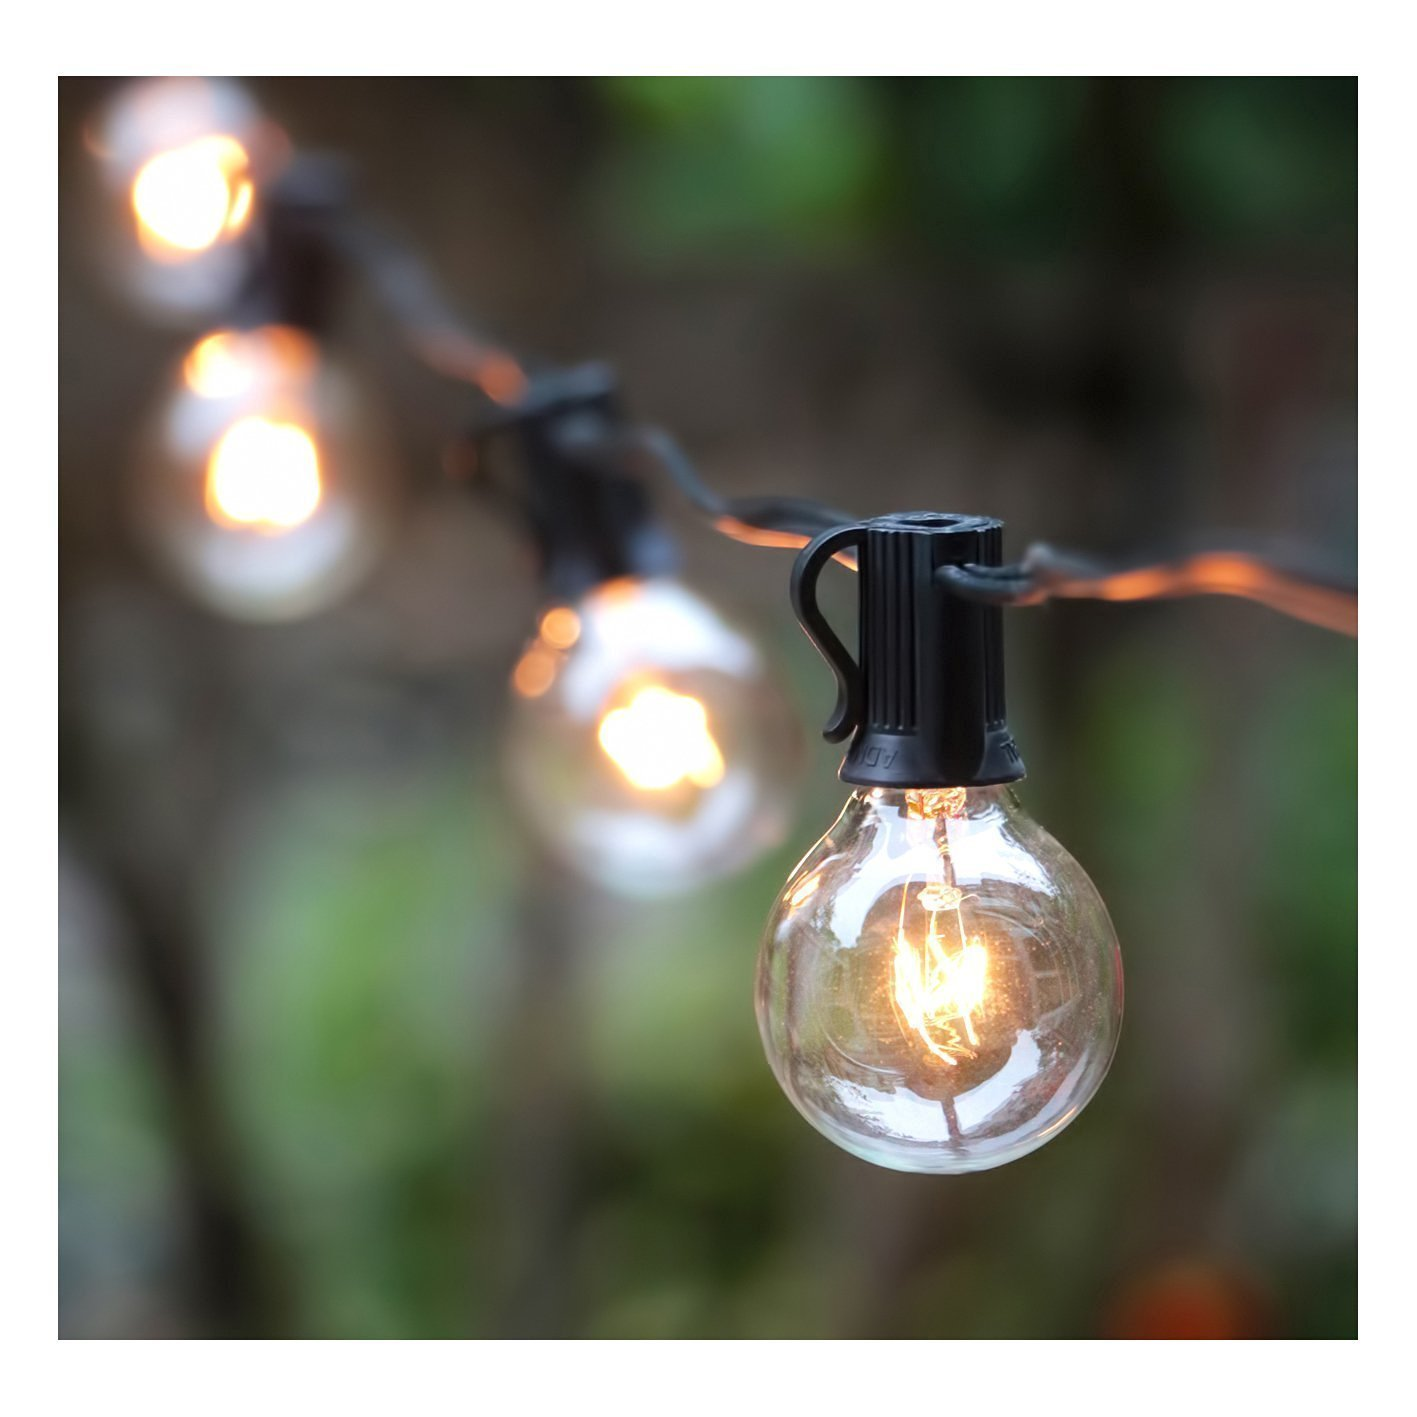 Brightown G40-50DENG-BLK-2 50Ft G40 Globe String Lights with Bulbs-UL Listd for Indoor/Outdoor Commercial Decor, Black